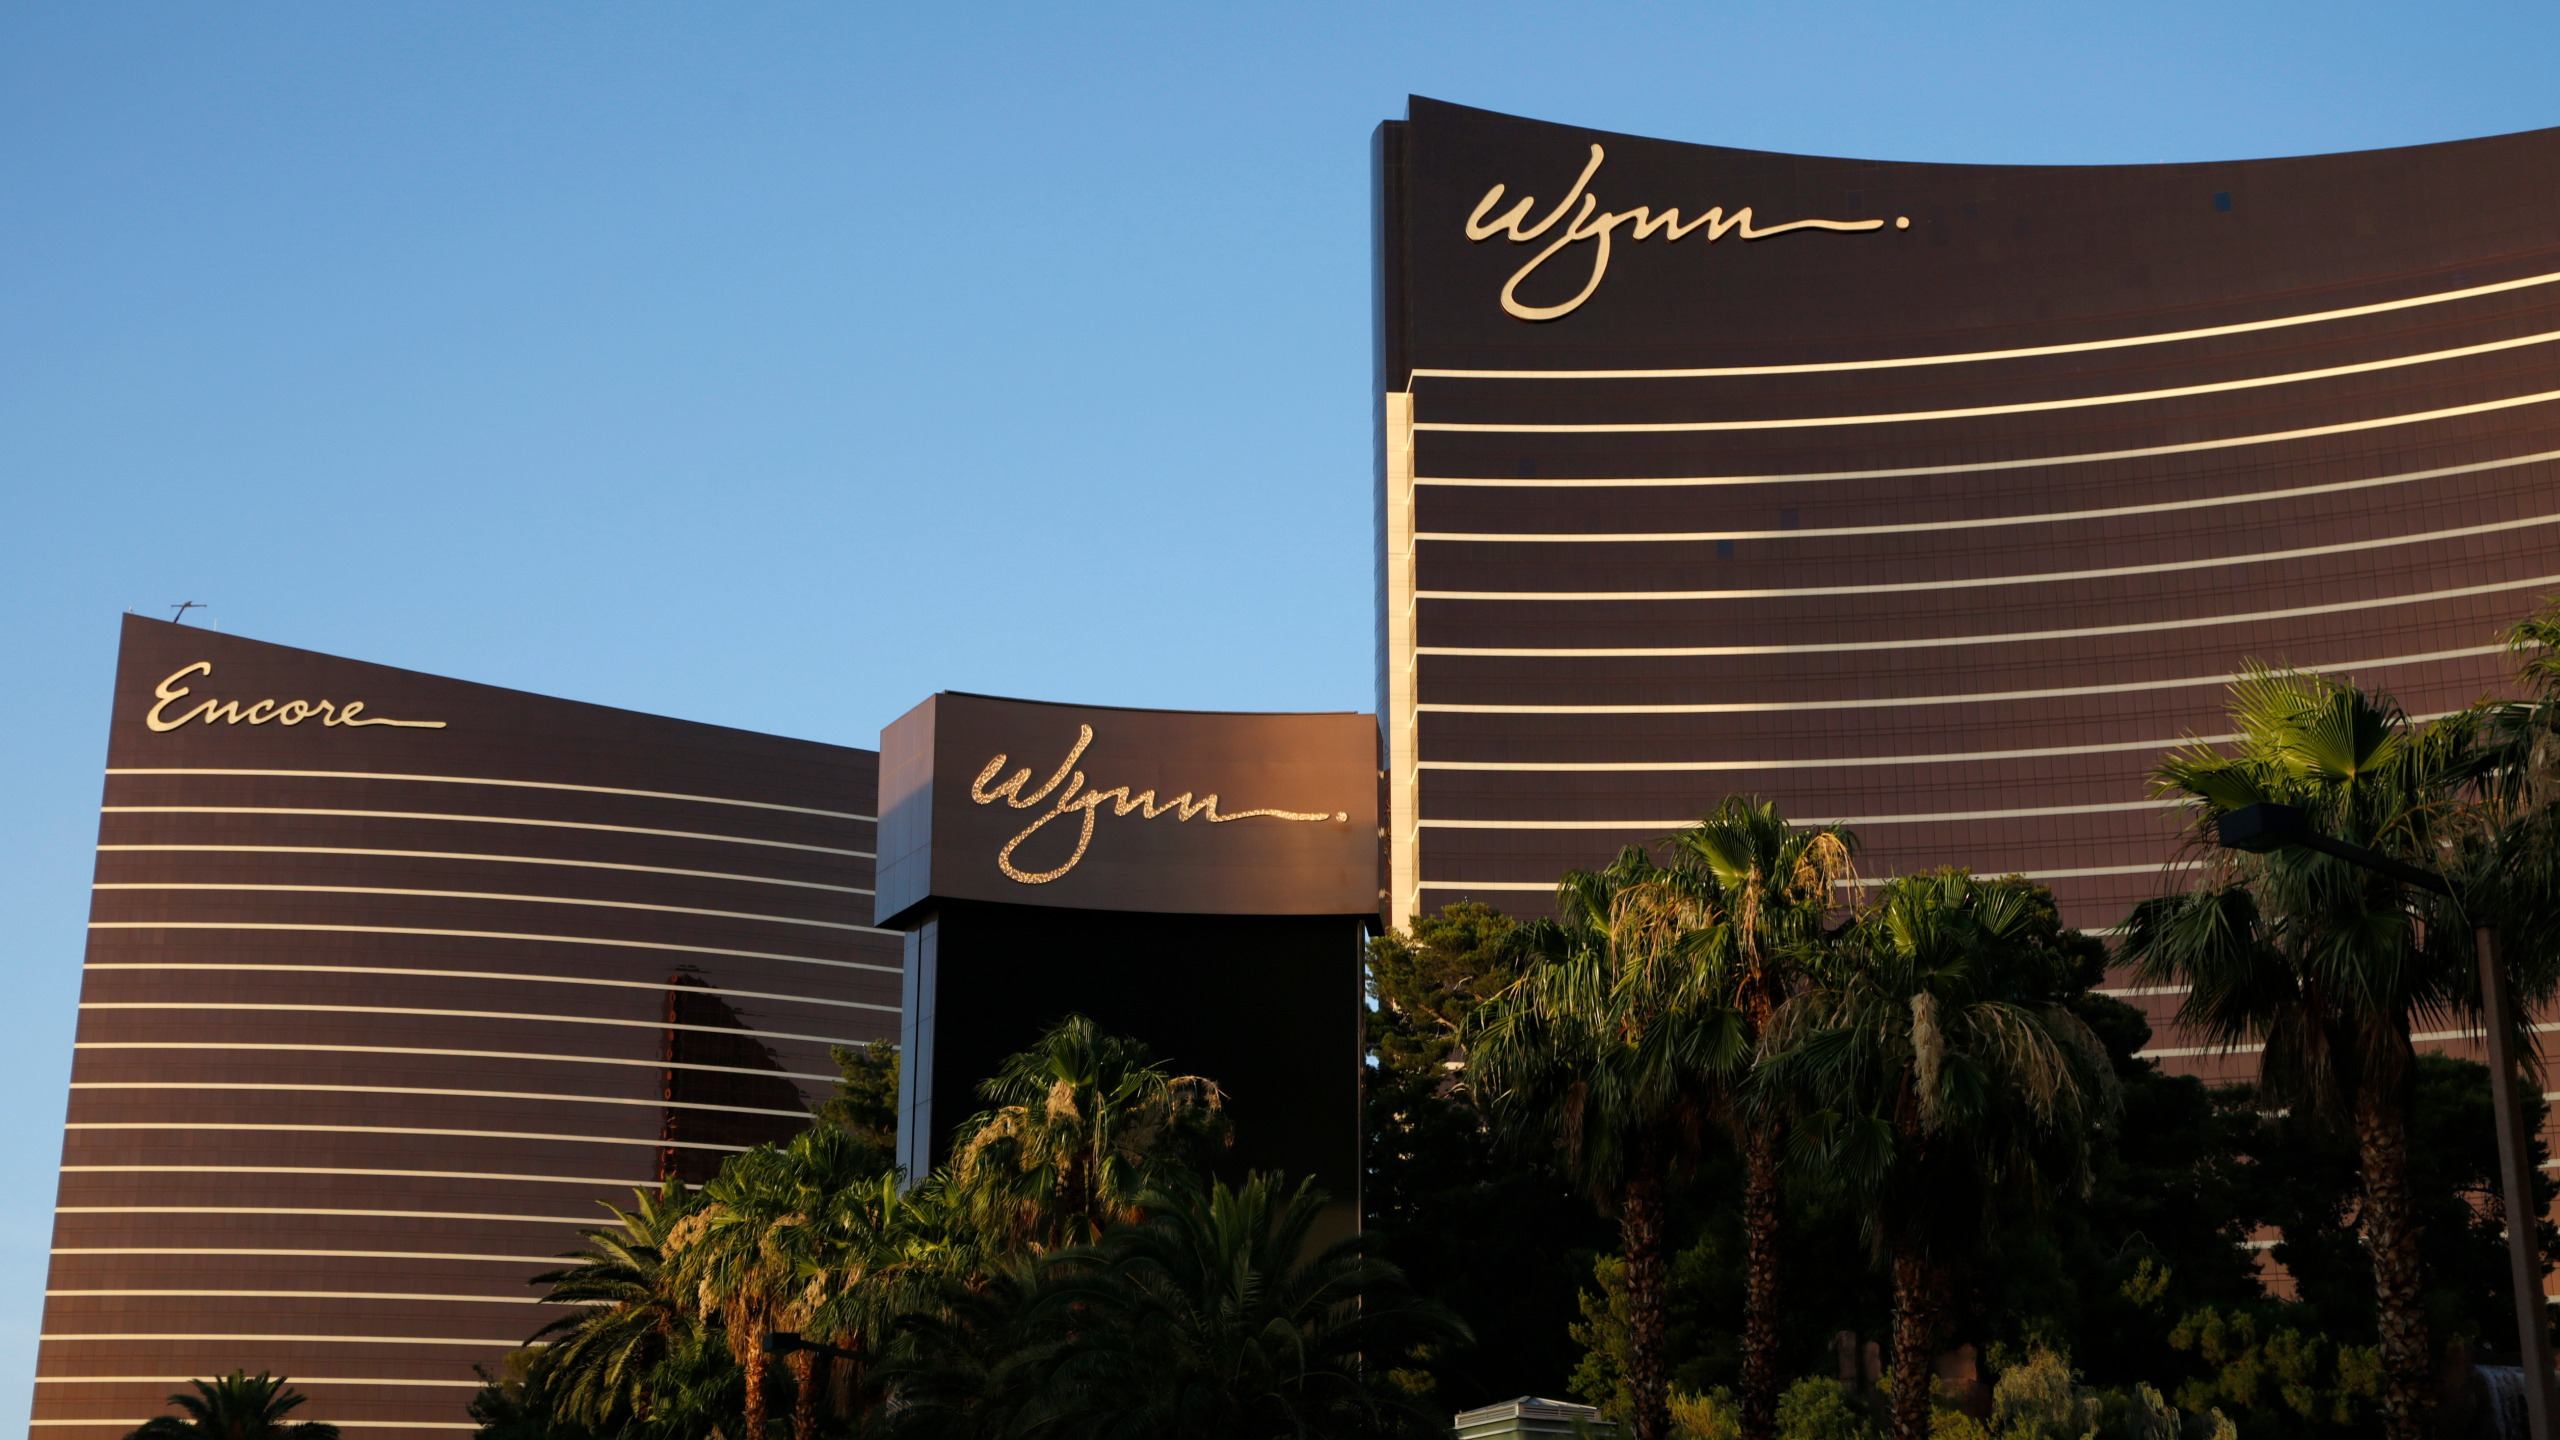 Sexual_Misconduct_Wynn_Resorts_20692-159532.jpg93136386